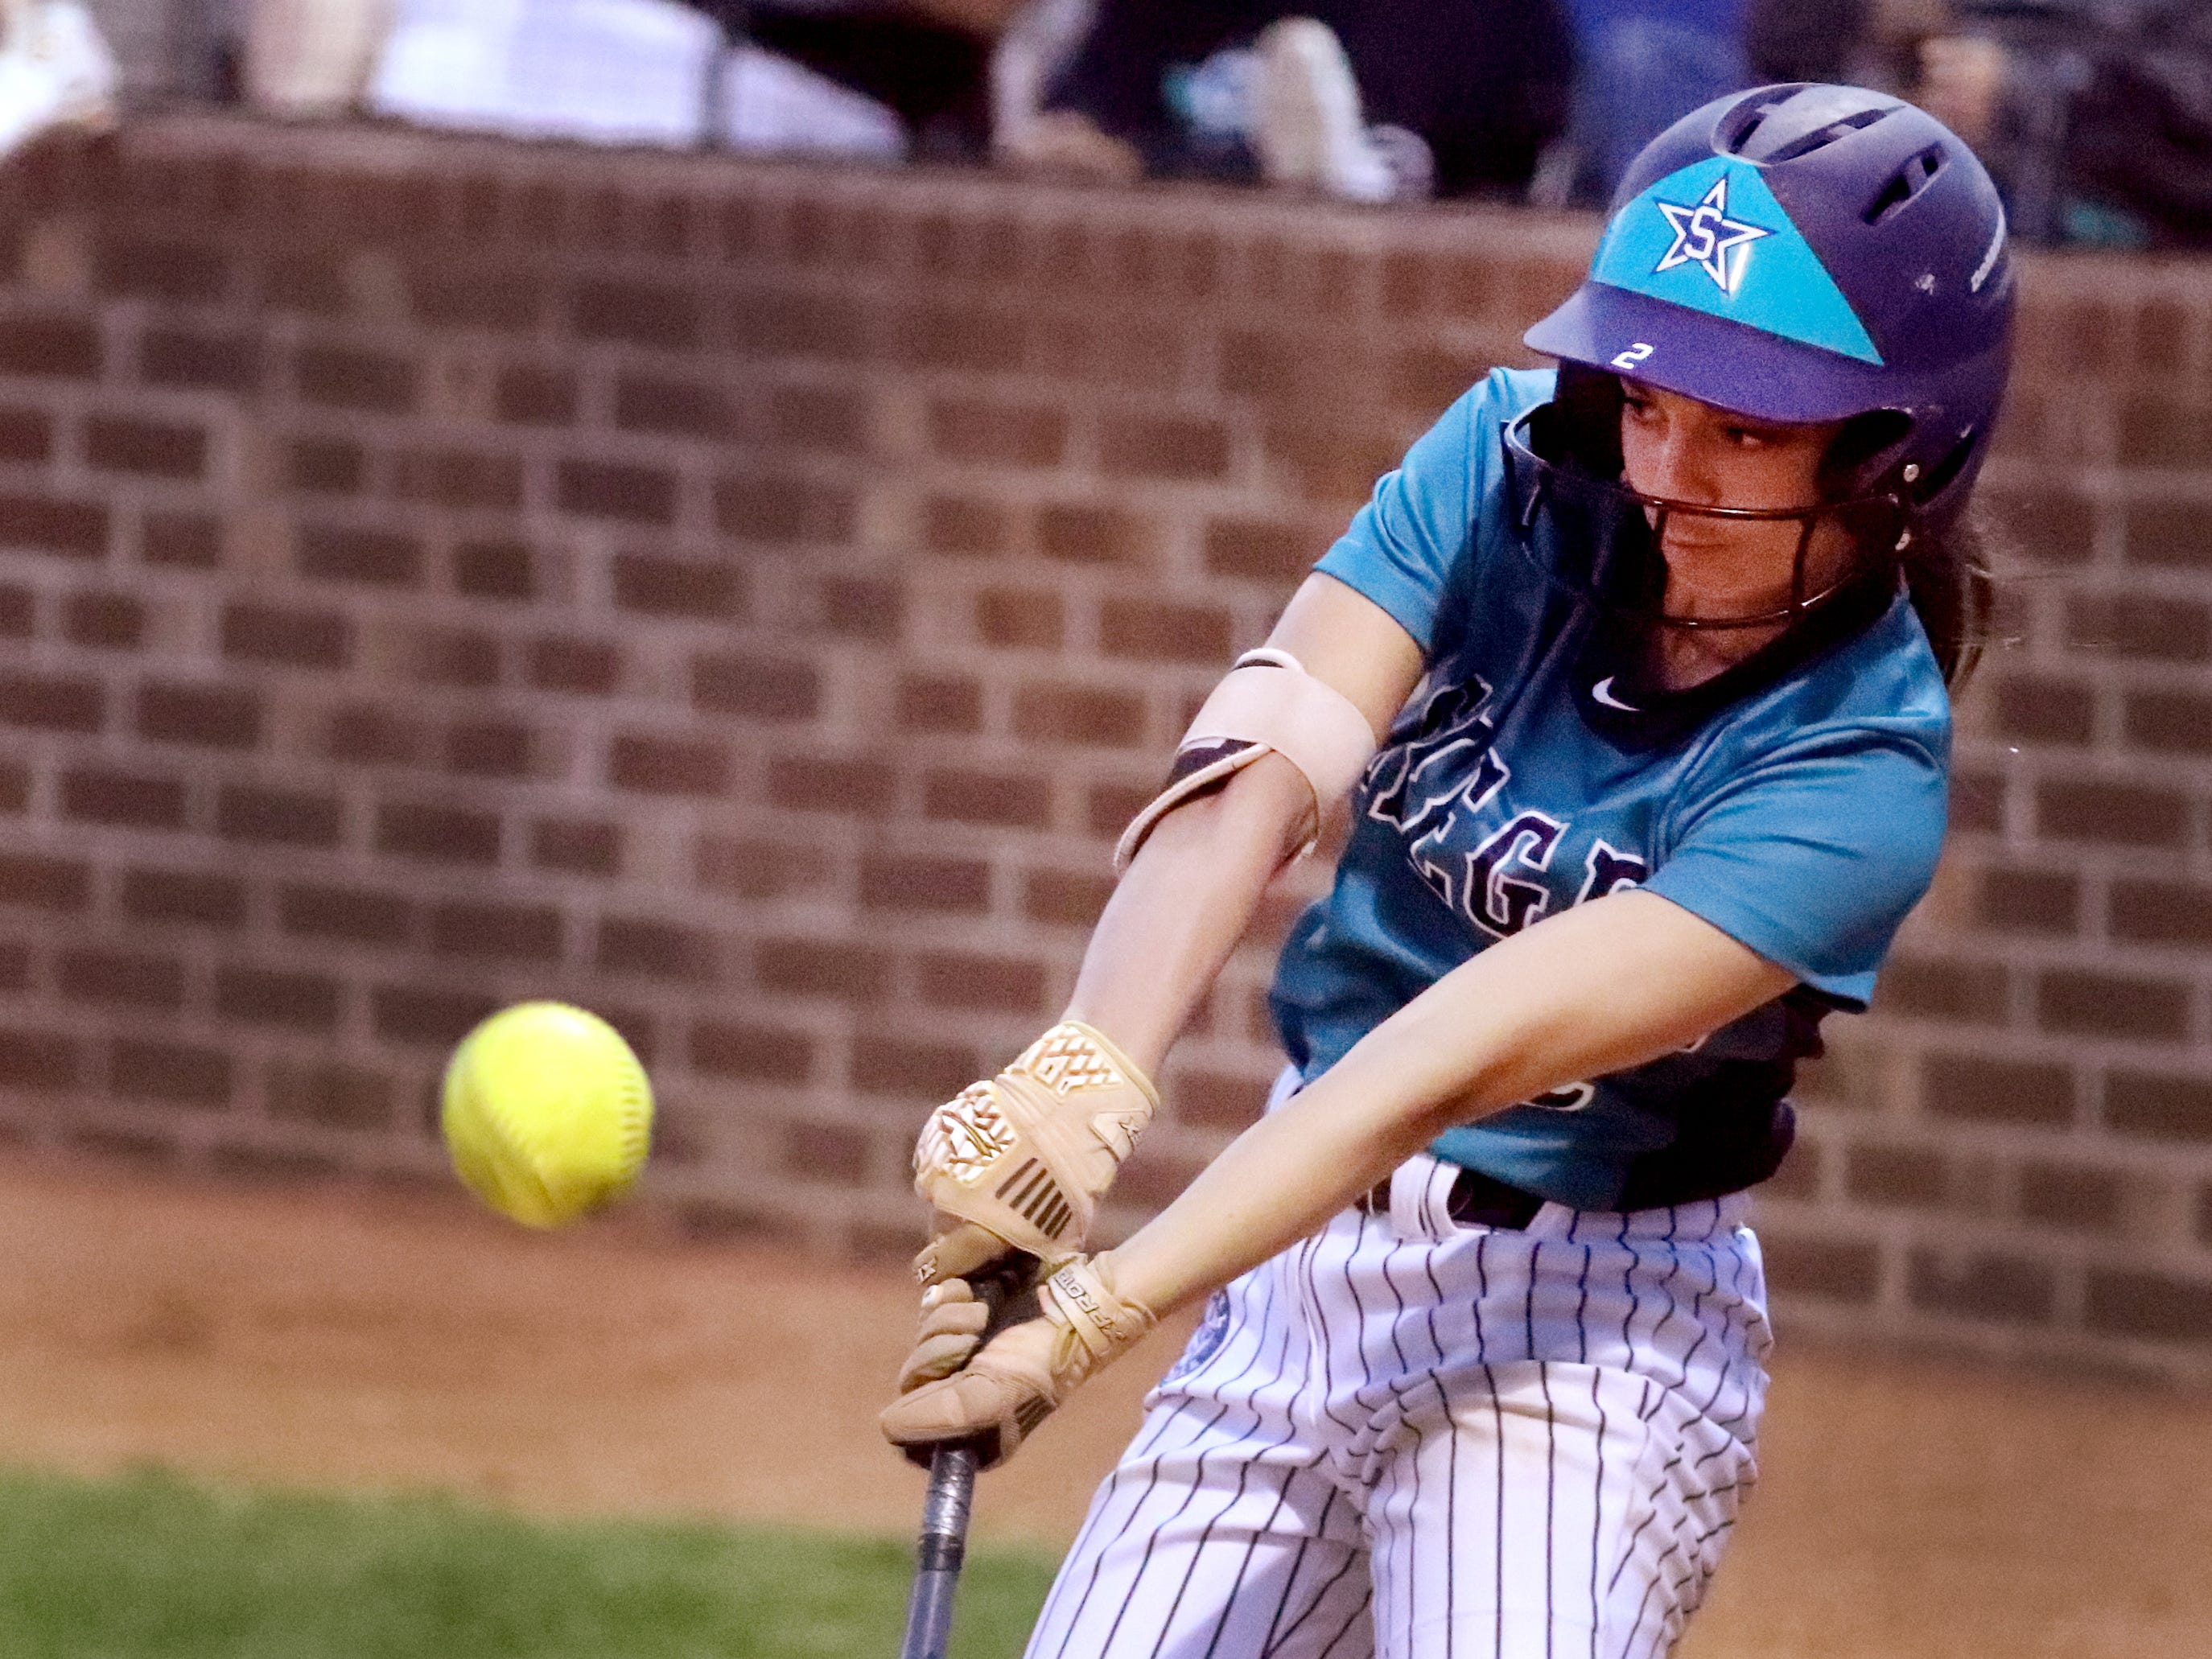 Siegel's Reagan Duran (2) makes contact with the ball during the game against Riverdale on Thursday April 11, 2019, at Riverdale.